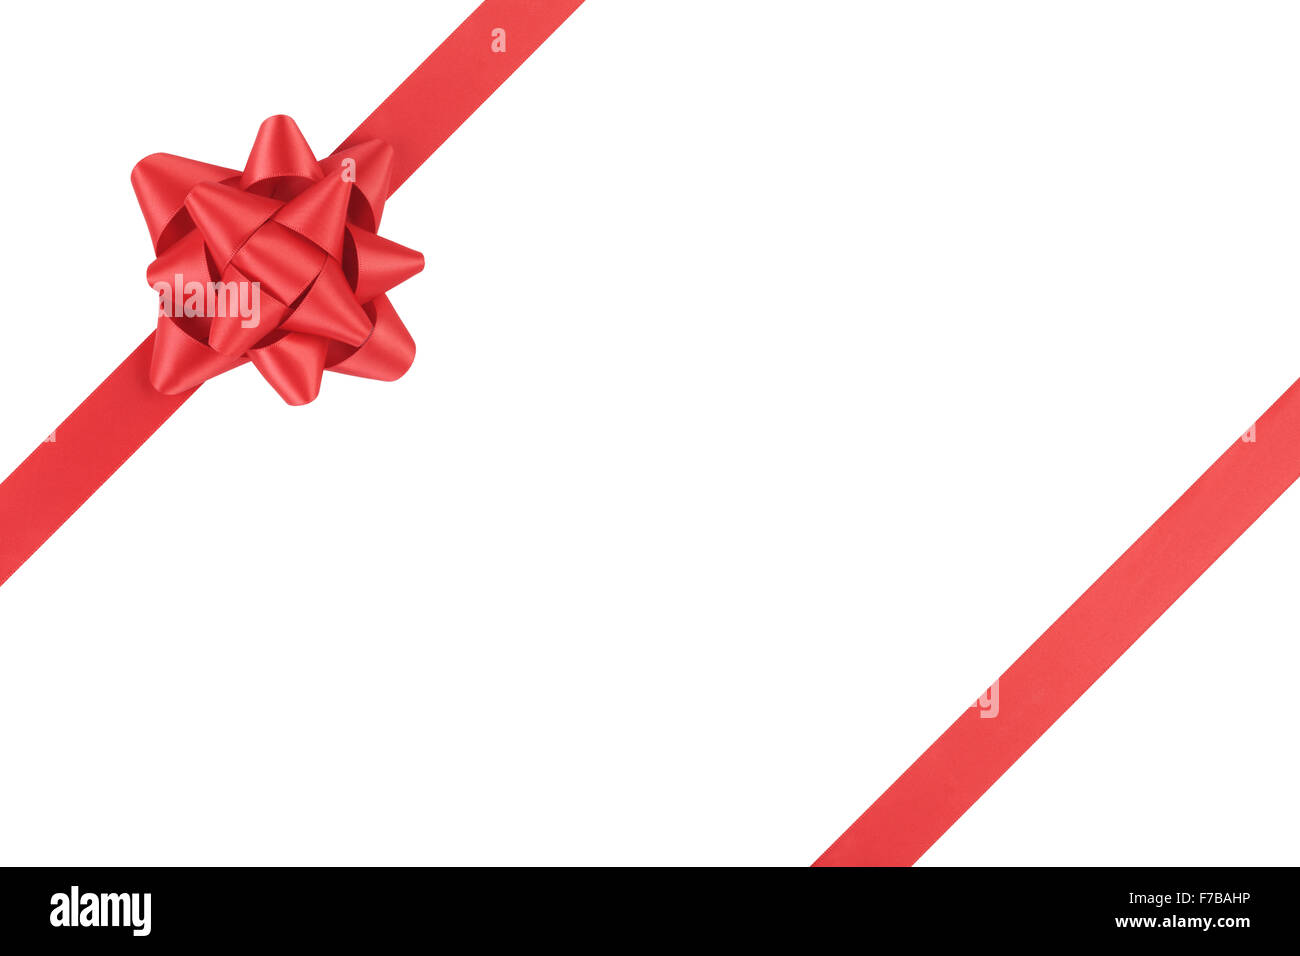 red ribbon template for packaging with gift bow isolated on white